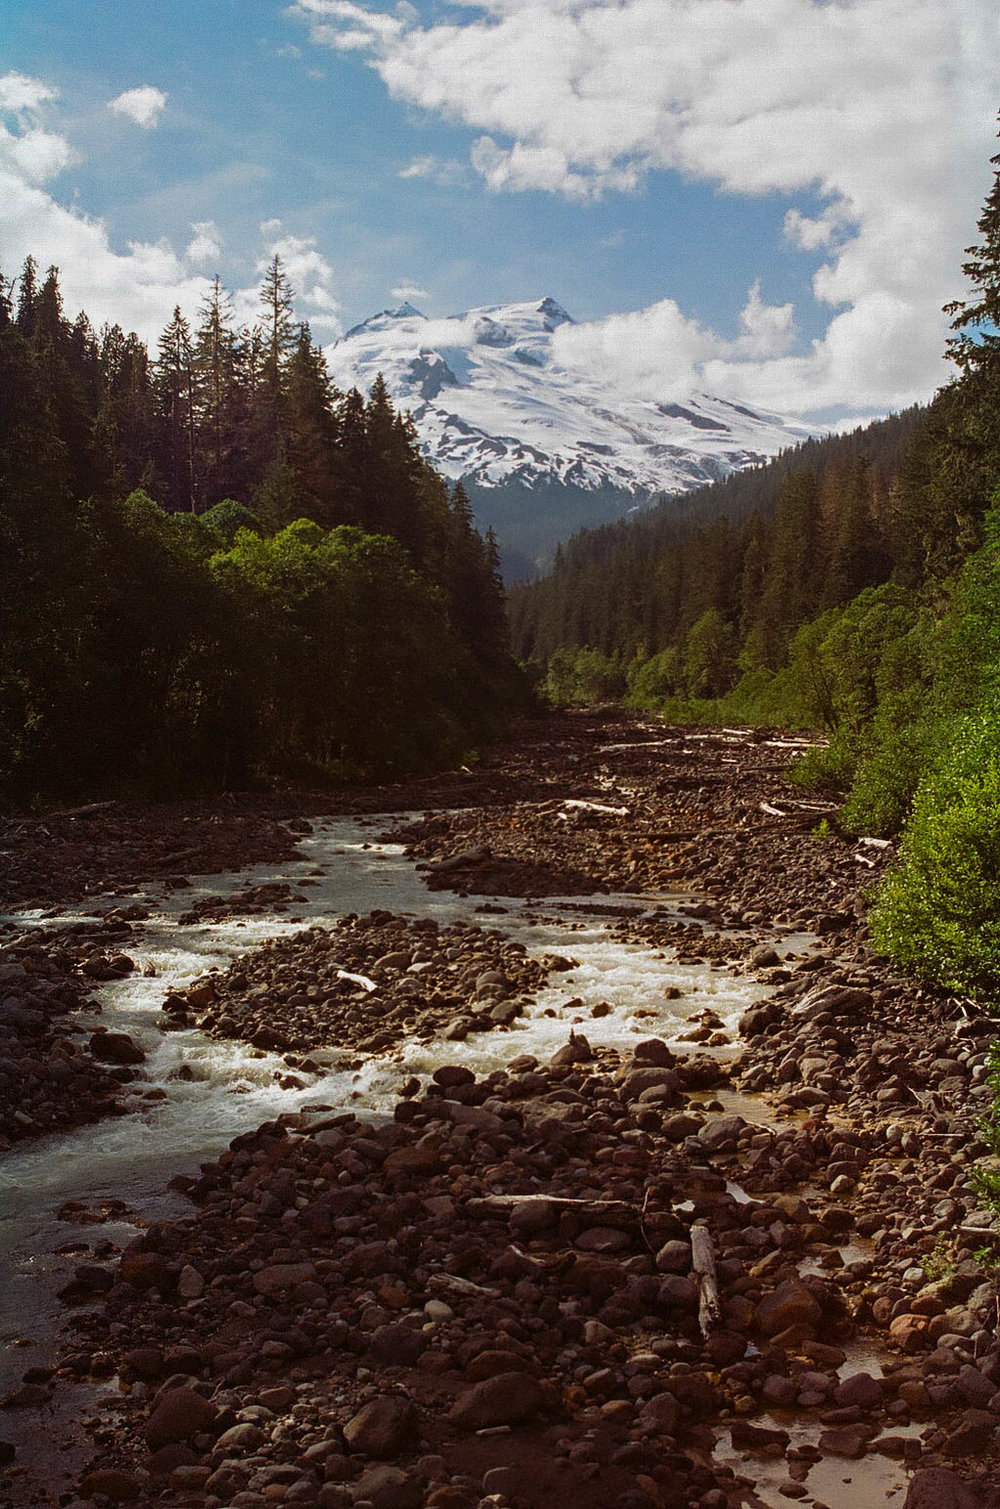 Mt. Baker seen from one of the creek crossings on the way to Baker Lake; Kodak Gold 200